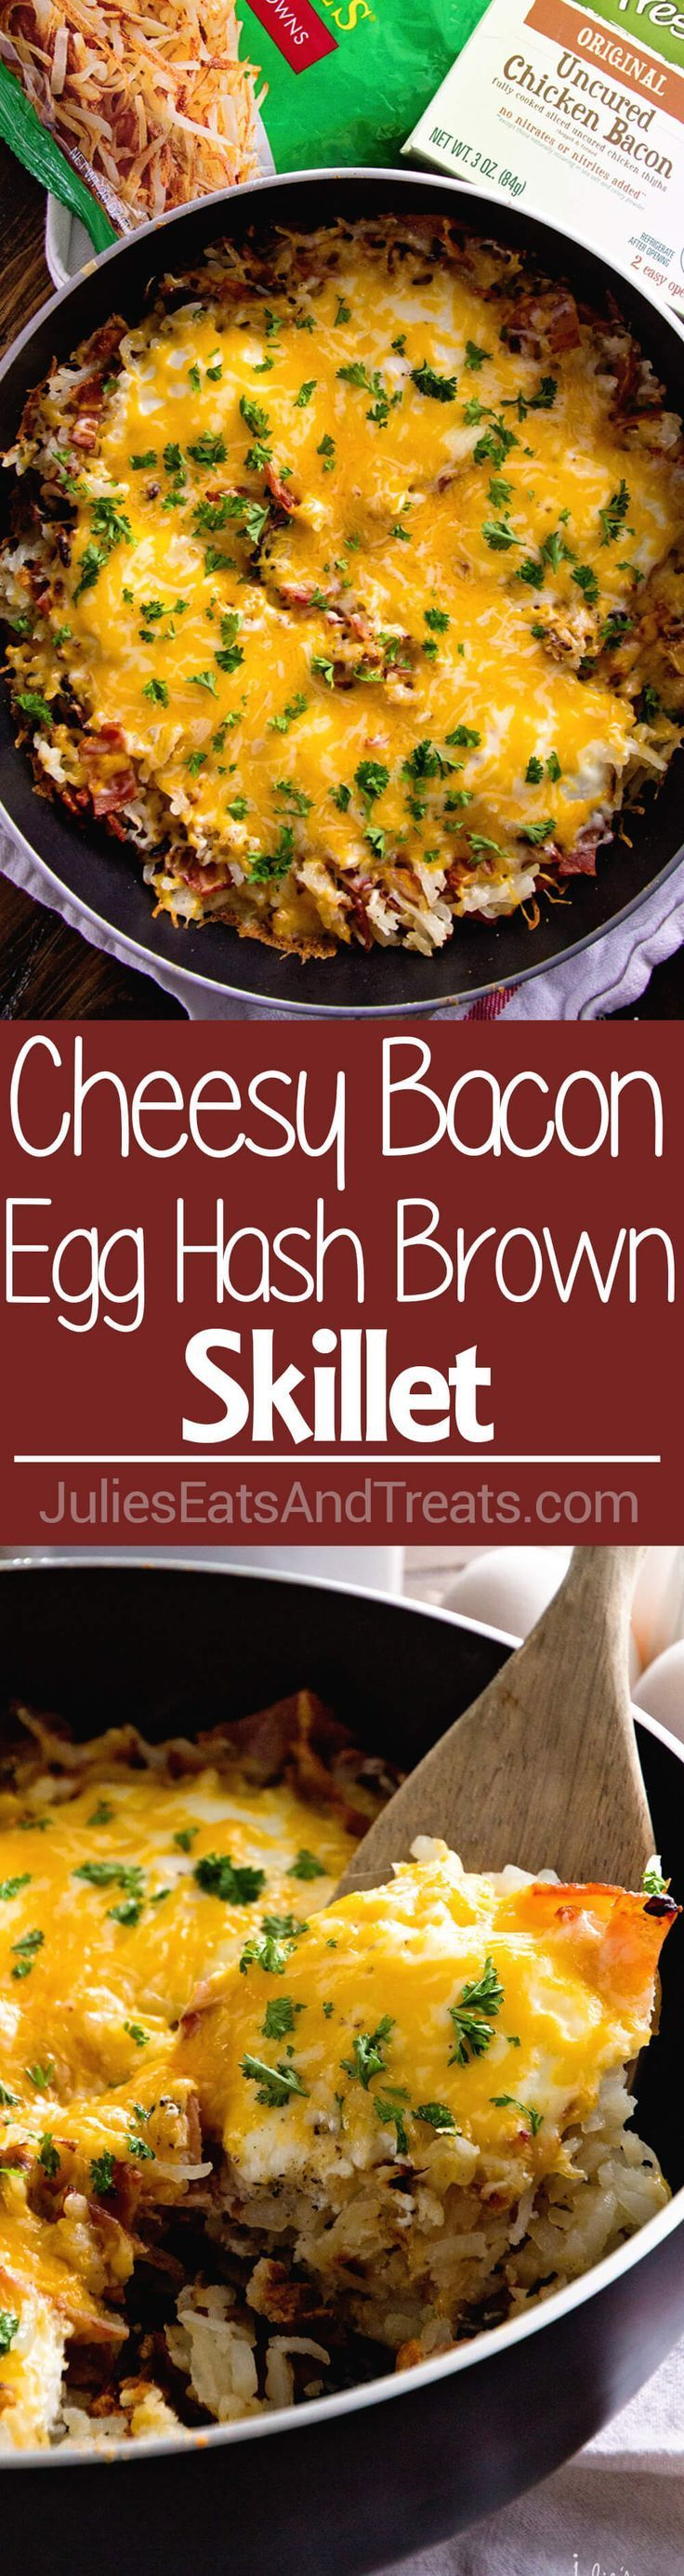 Cheesy Bacon Egg Hash Brown Skillet ~ Delicious, Easy Breakfast Skillet Loaded with Crispy Bacon, Hash Browns, Cheese and Eggs!  via /julieseats/